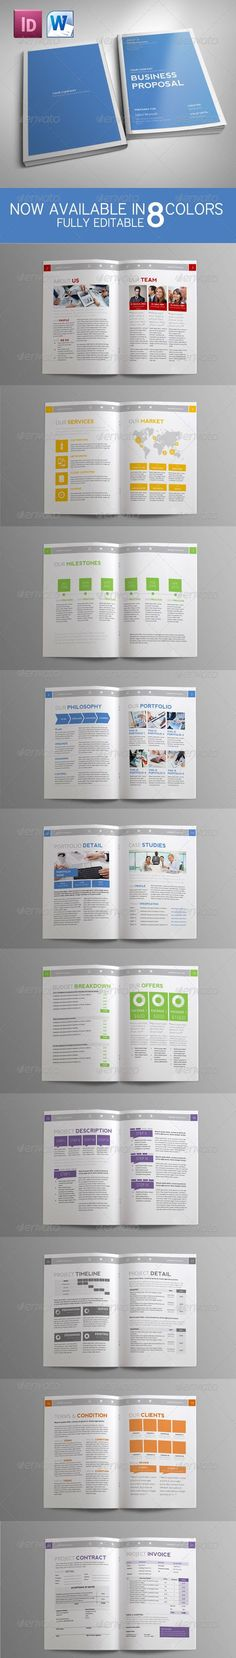 commercial proposal template #22